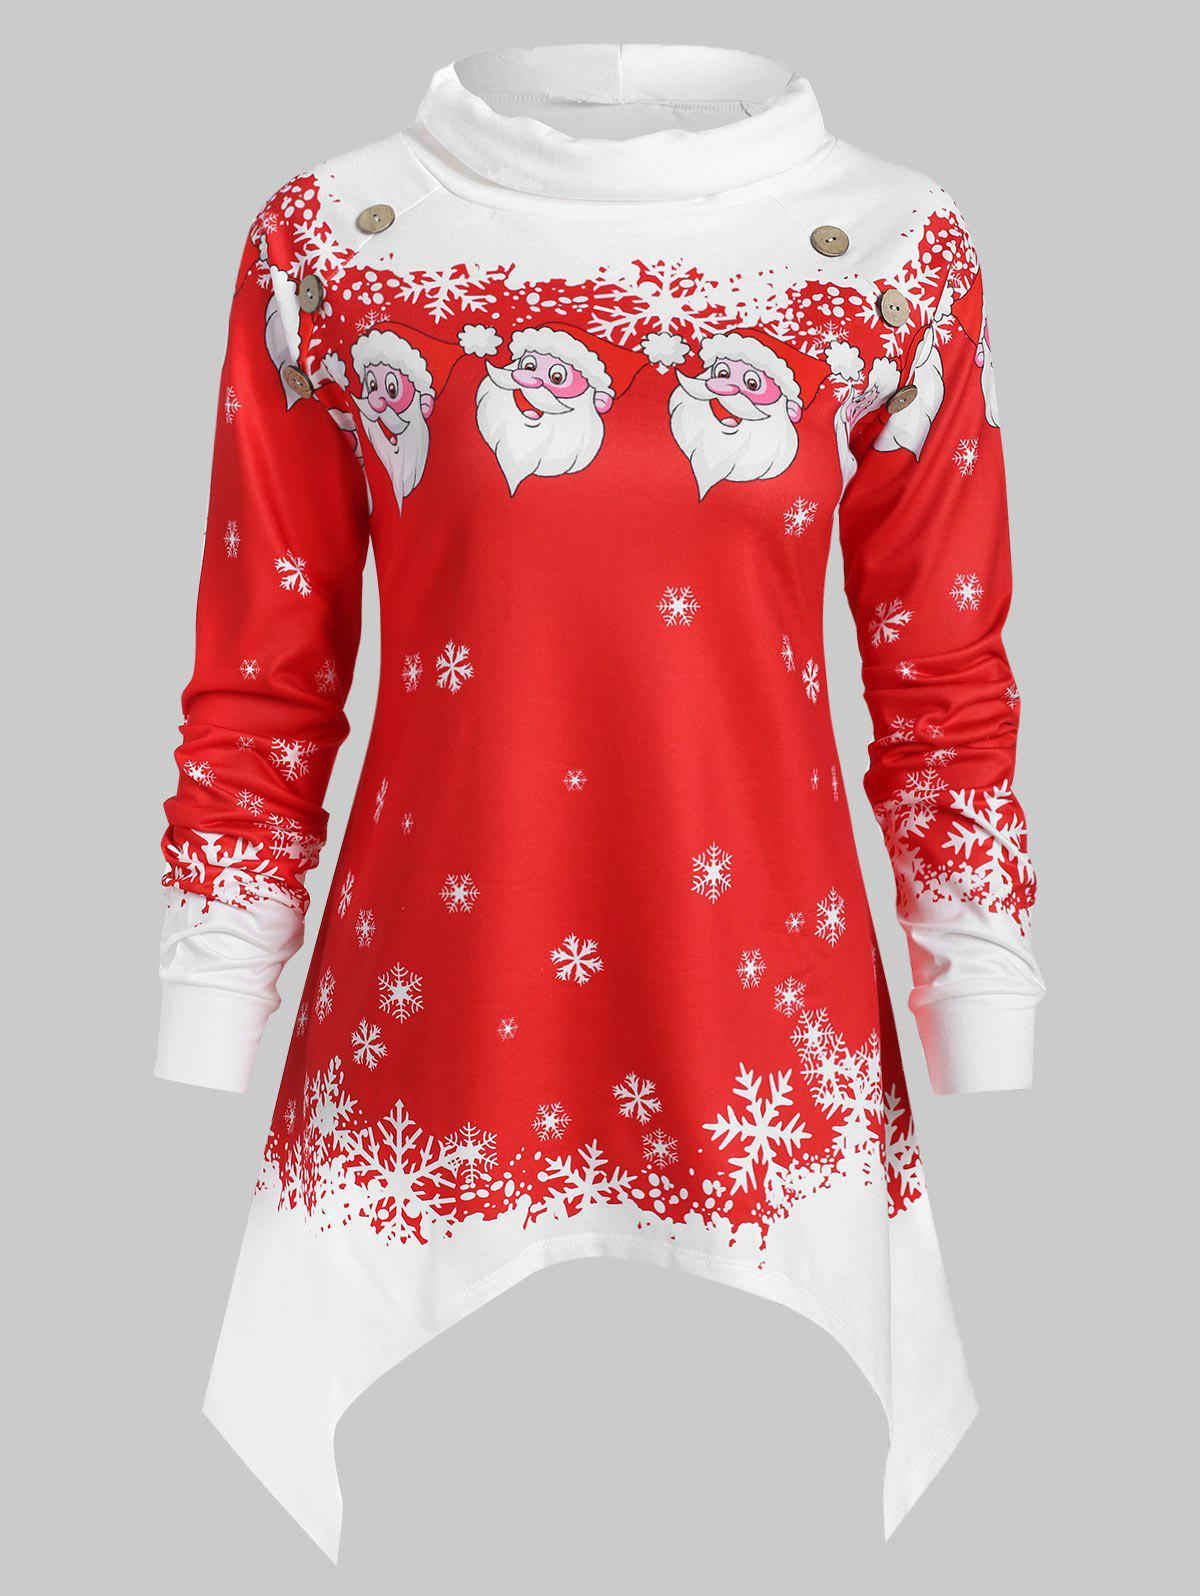 Shop Plus Size Turtleneck Snowflake and Santa Claus Sweatshirt